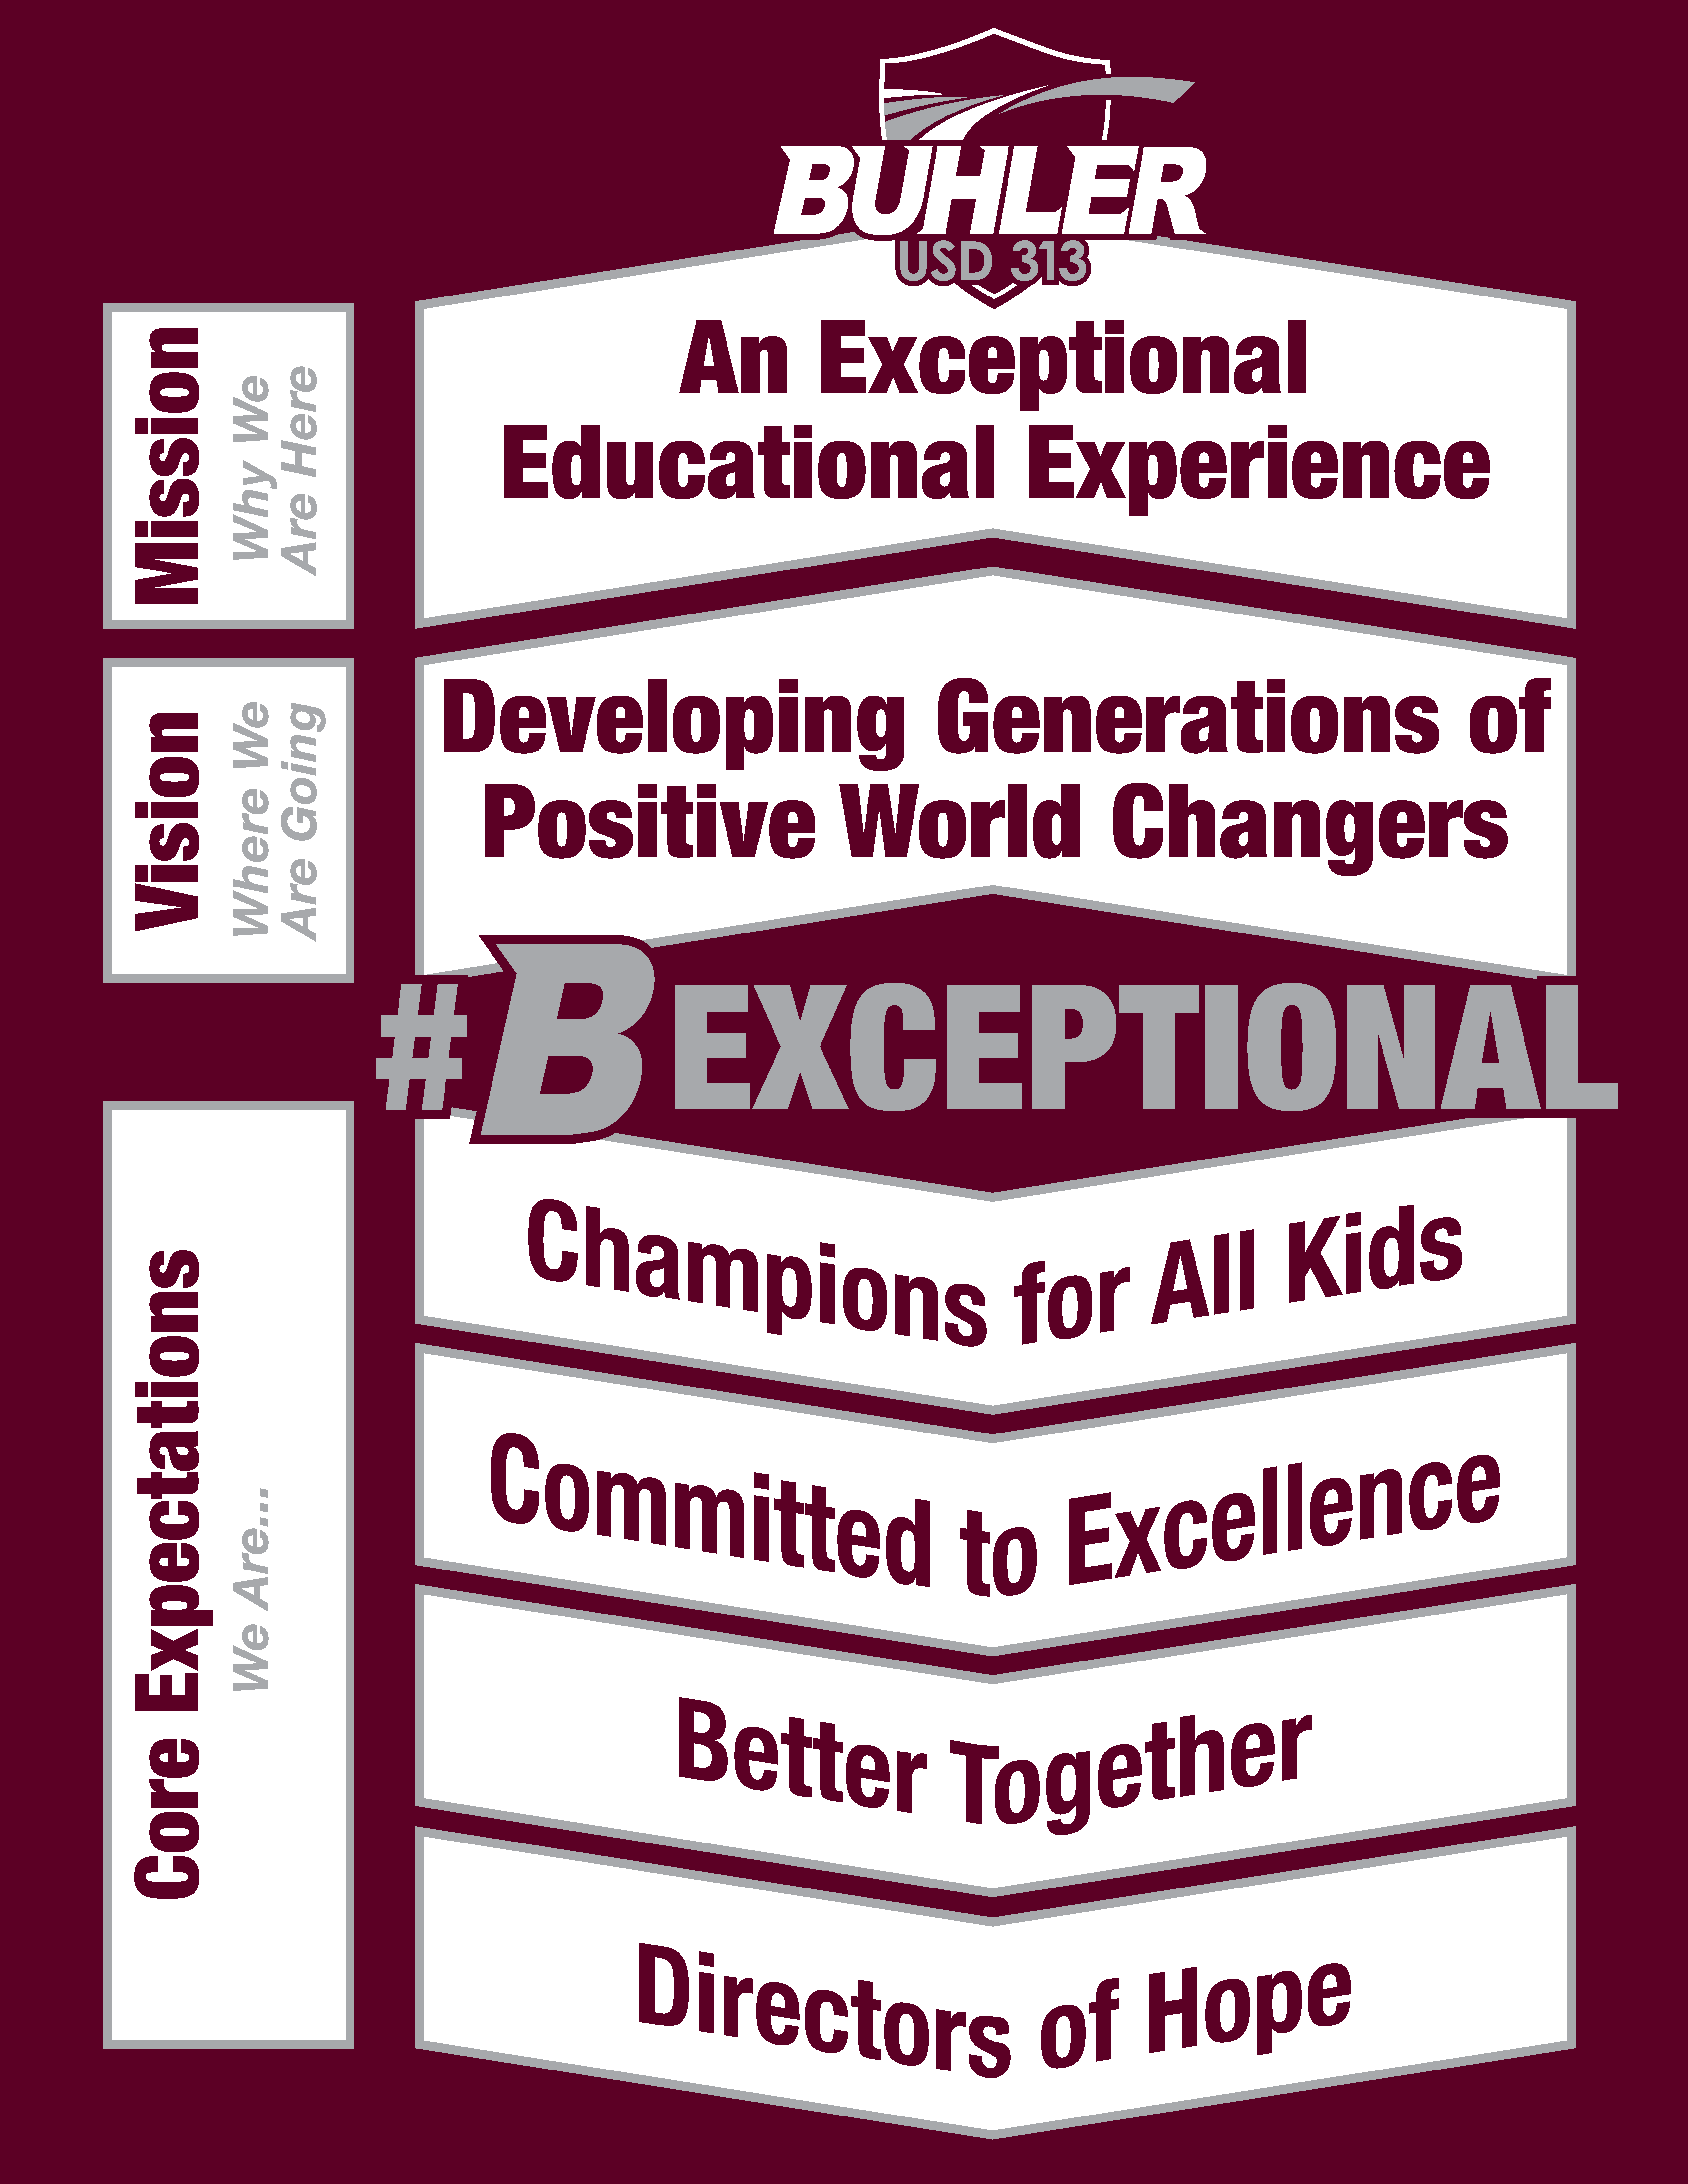 Mission: Why We Are Here - An Exceptional Educational Experience. Vision: Where We Are Going. Developing Generations of Positive World Changers. #BExceptional Core Expectations: We Are... Champions for all Kids, Committed to Excellence, Better Together, Directors of Hope.